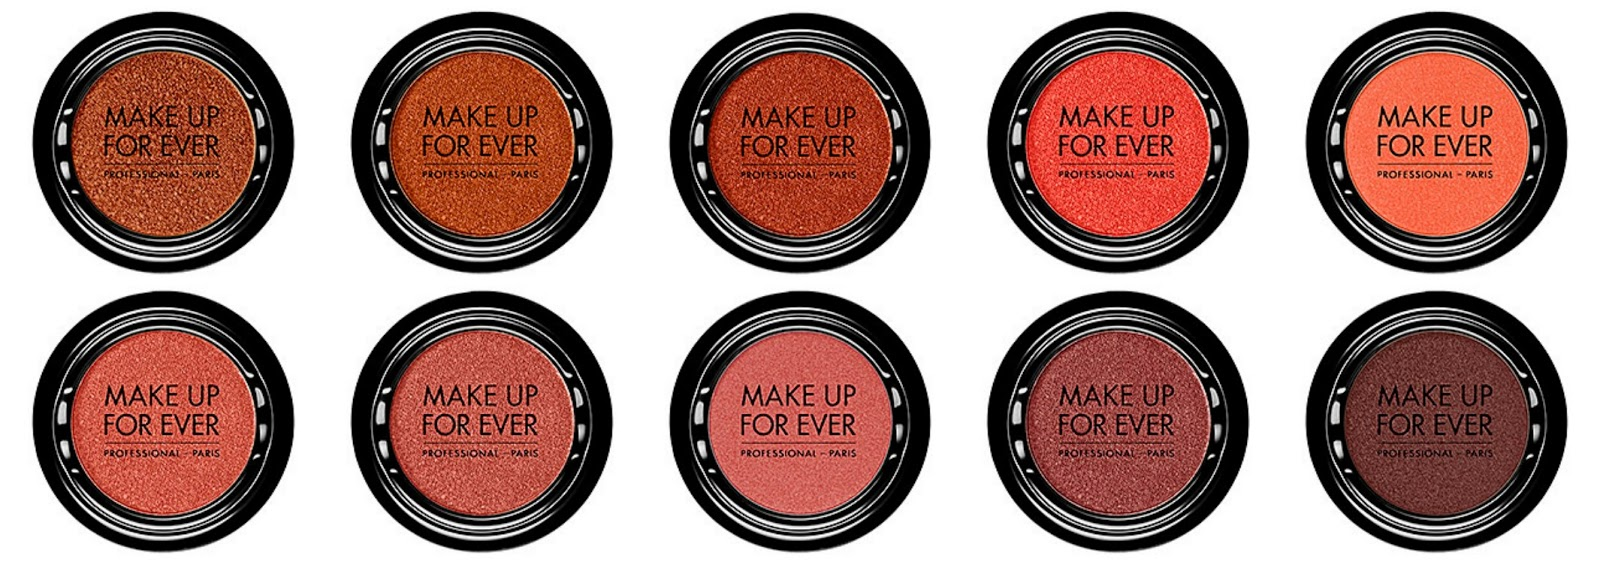 Make Up For Ever Artist Shadow Top from left: I724 Rust; I730 Pumpkin; I736 Copper Red; I746 Watermelon; I752 Electric Coral Bottom from left: I802 Coral Pink; I804 Golden Pink; I808 English Pink; I824 Ocher Pink; I834 Grape